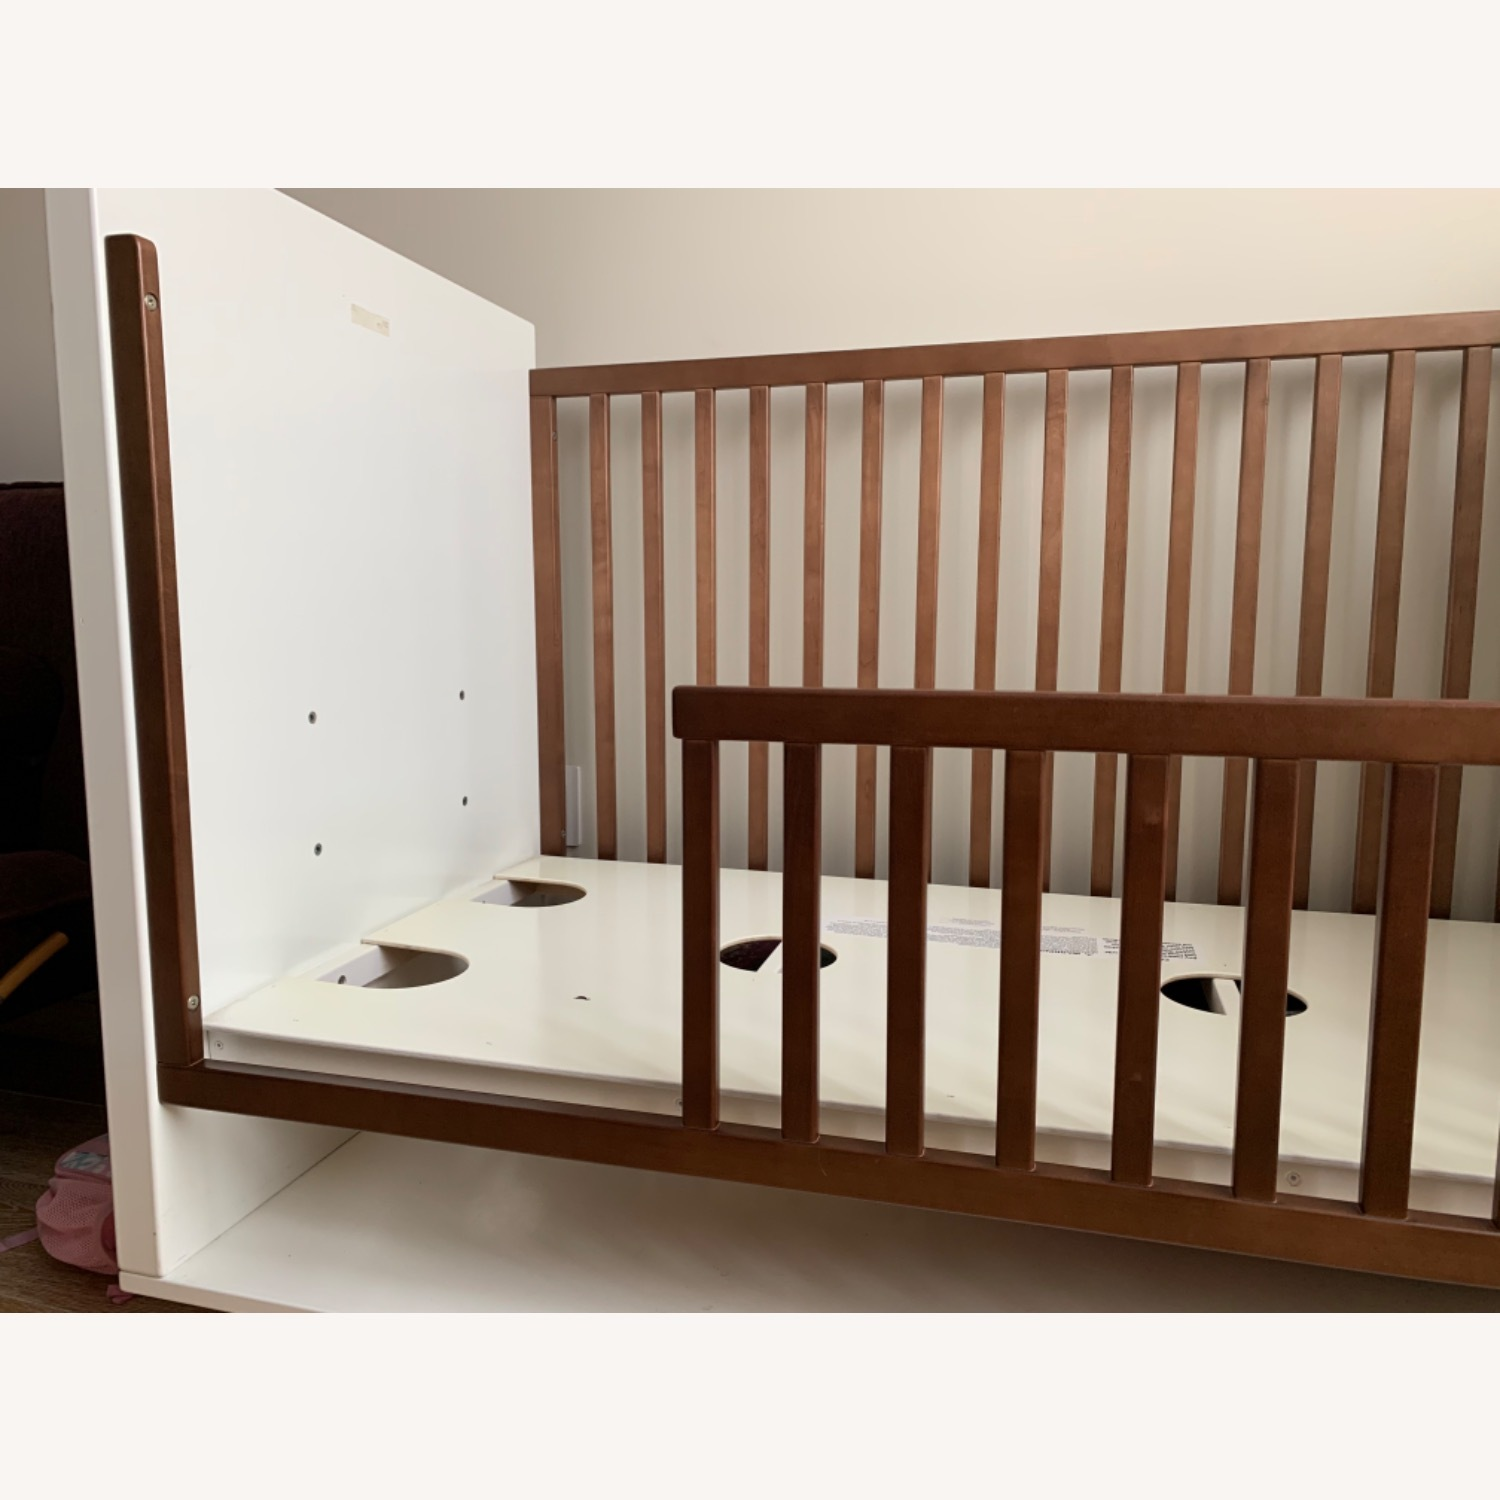 Room & Board Moda Crib and Toddler Bed - image-4